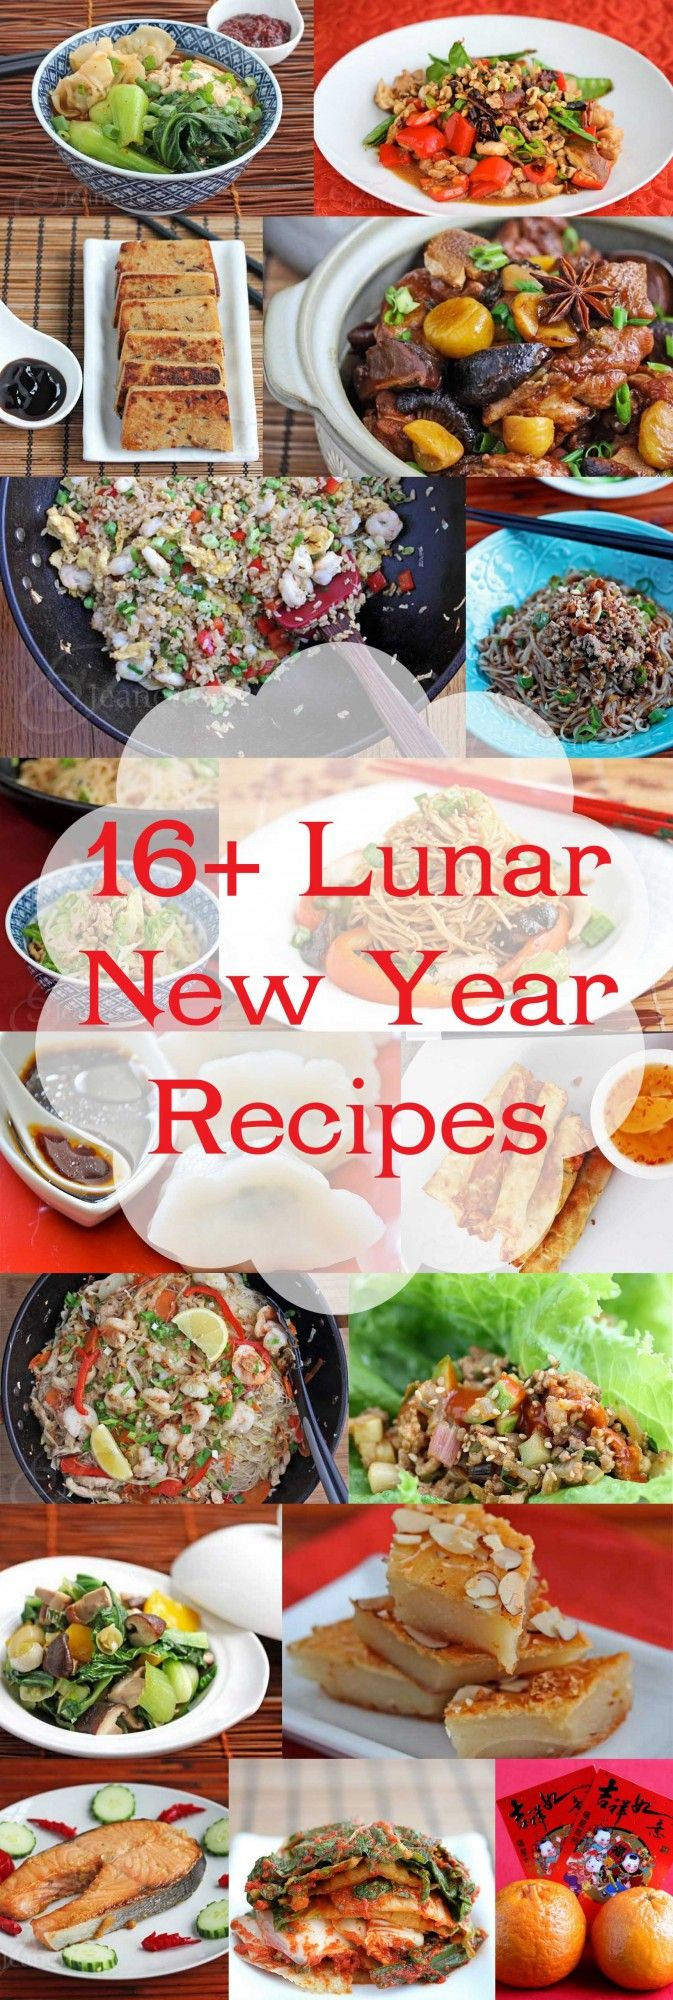 16+  Lunar and Chinese New Year Recipes © Jeanette's Healthy Living #ChineseNewYear #YearoftheHorse #LunarNewYear